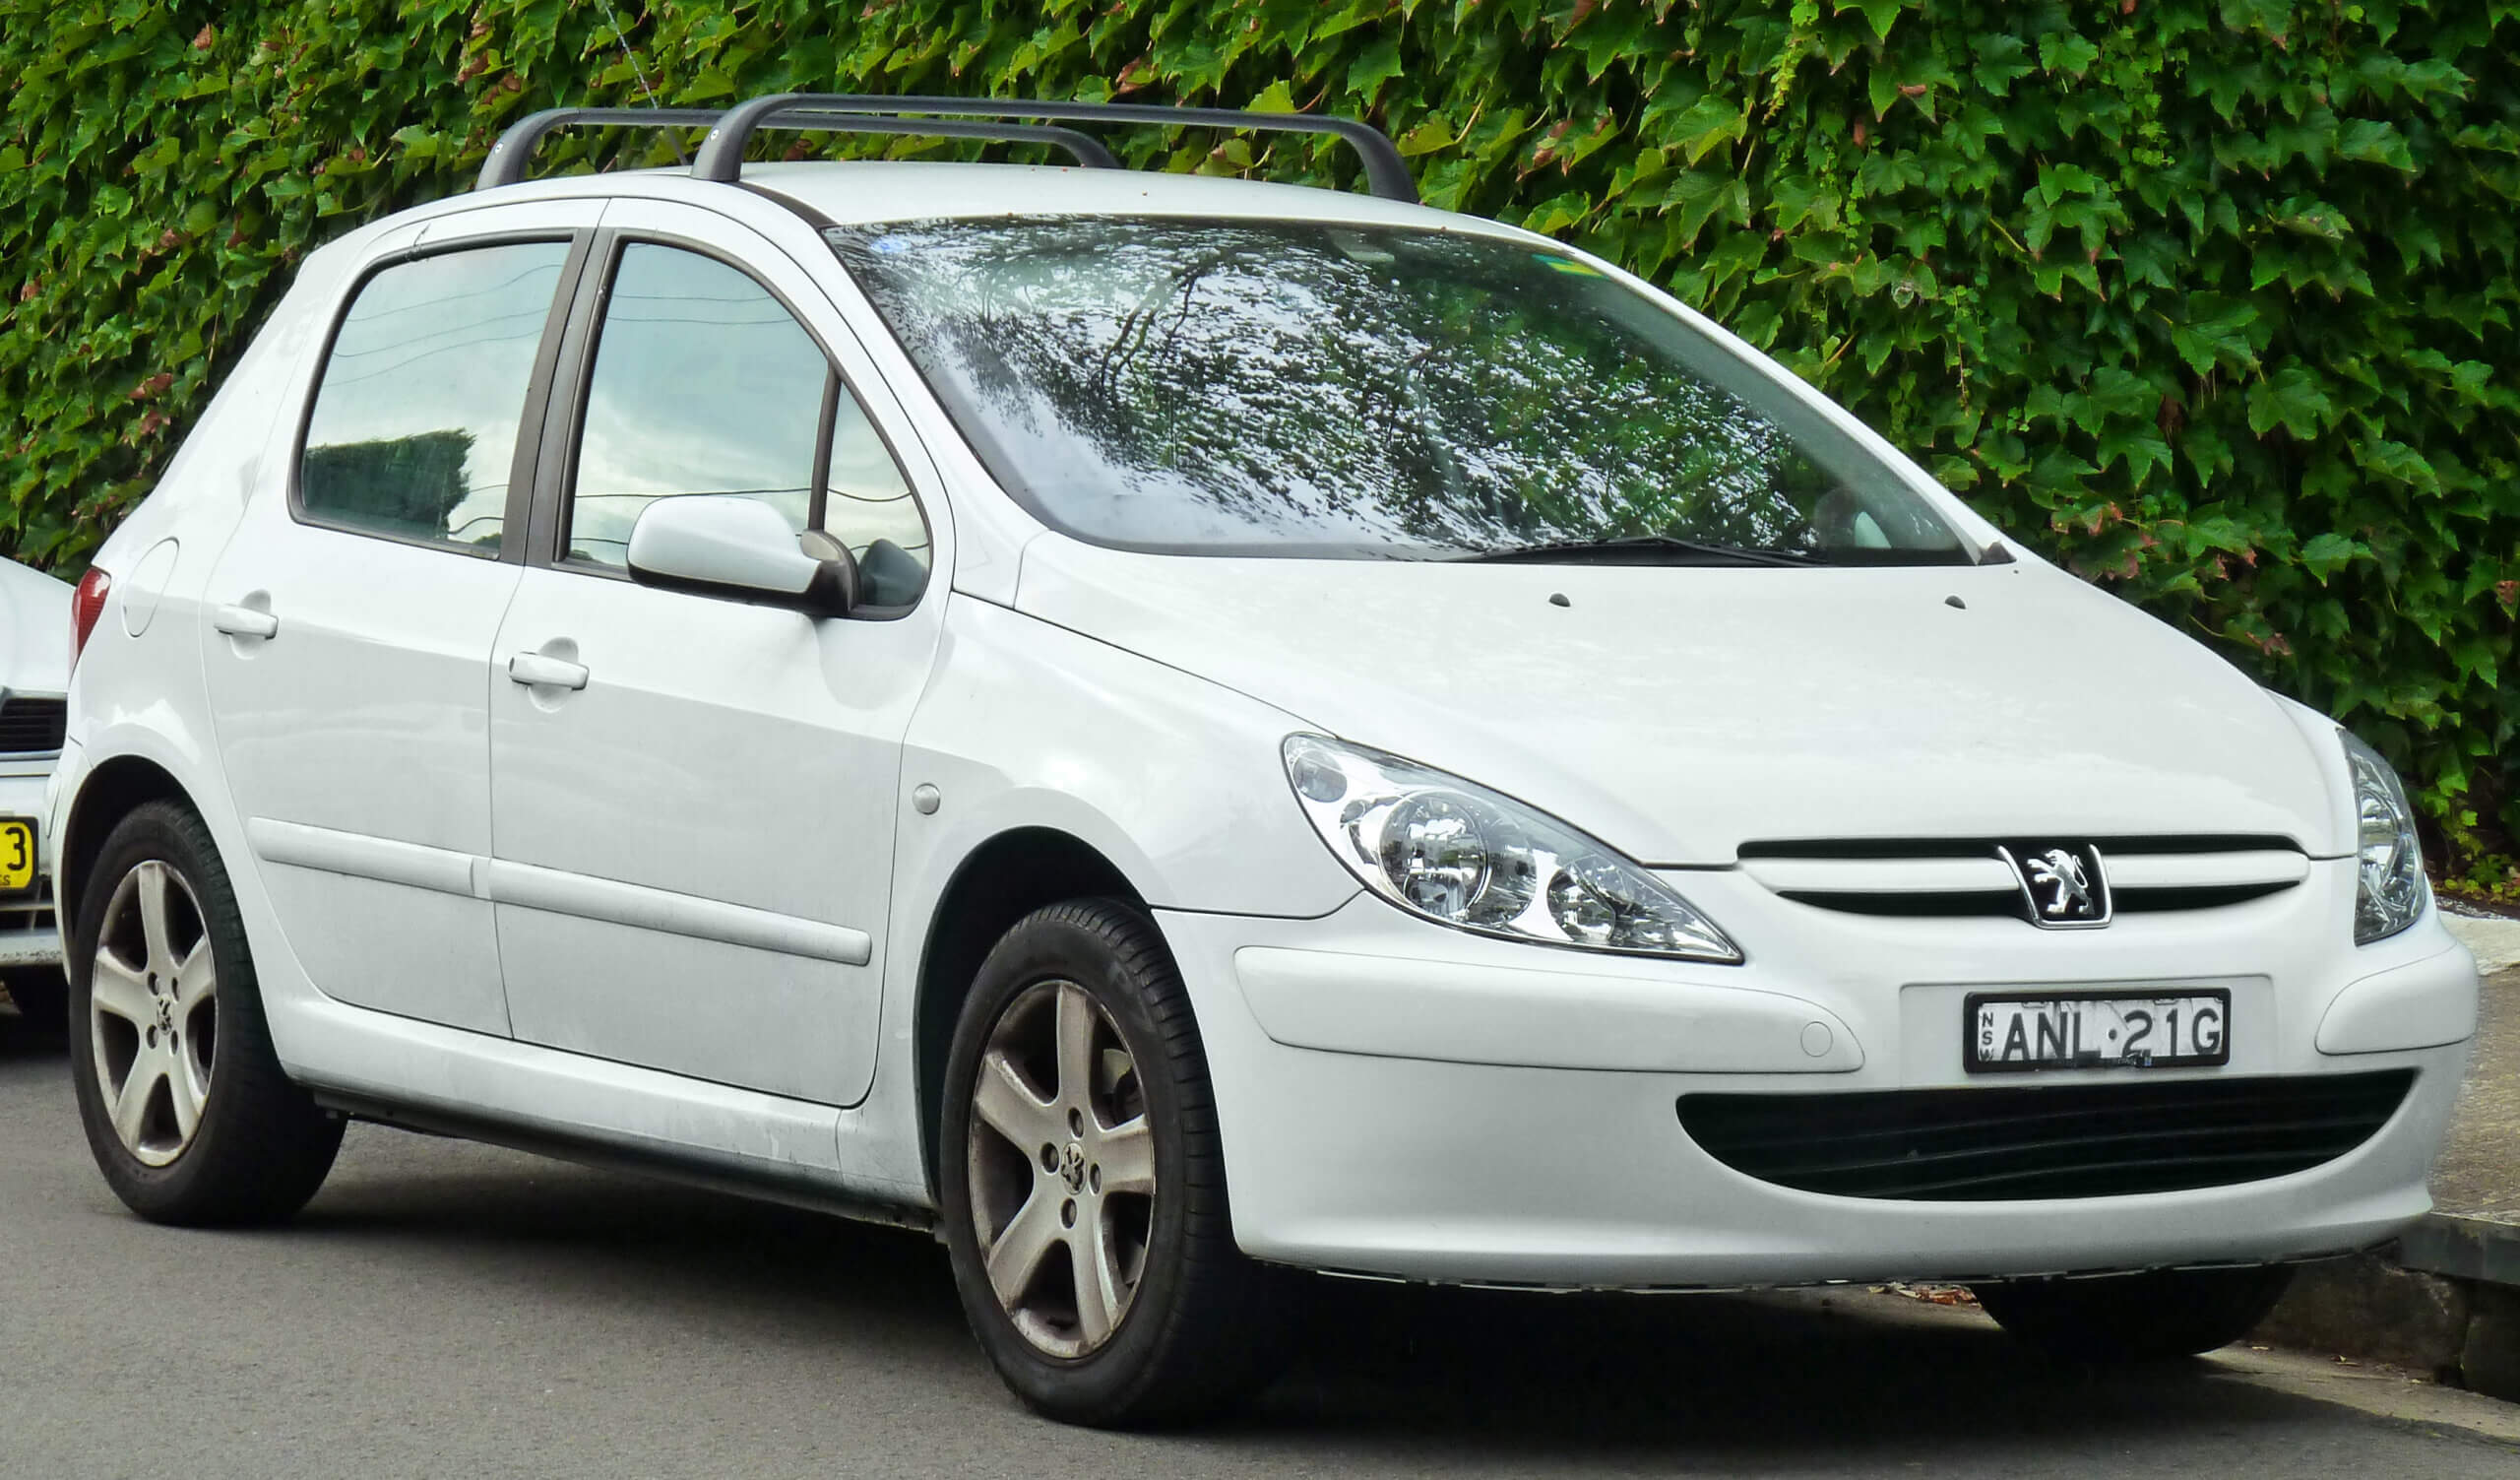 Peugeot 307 Price in Nigeria